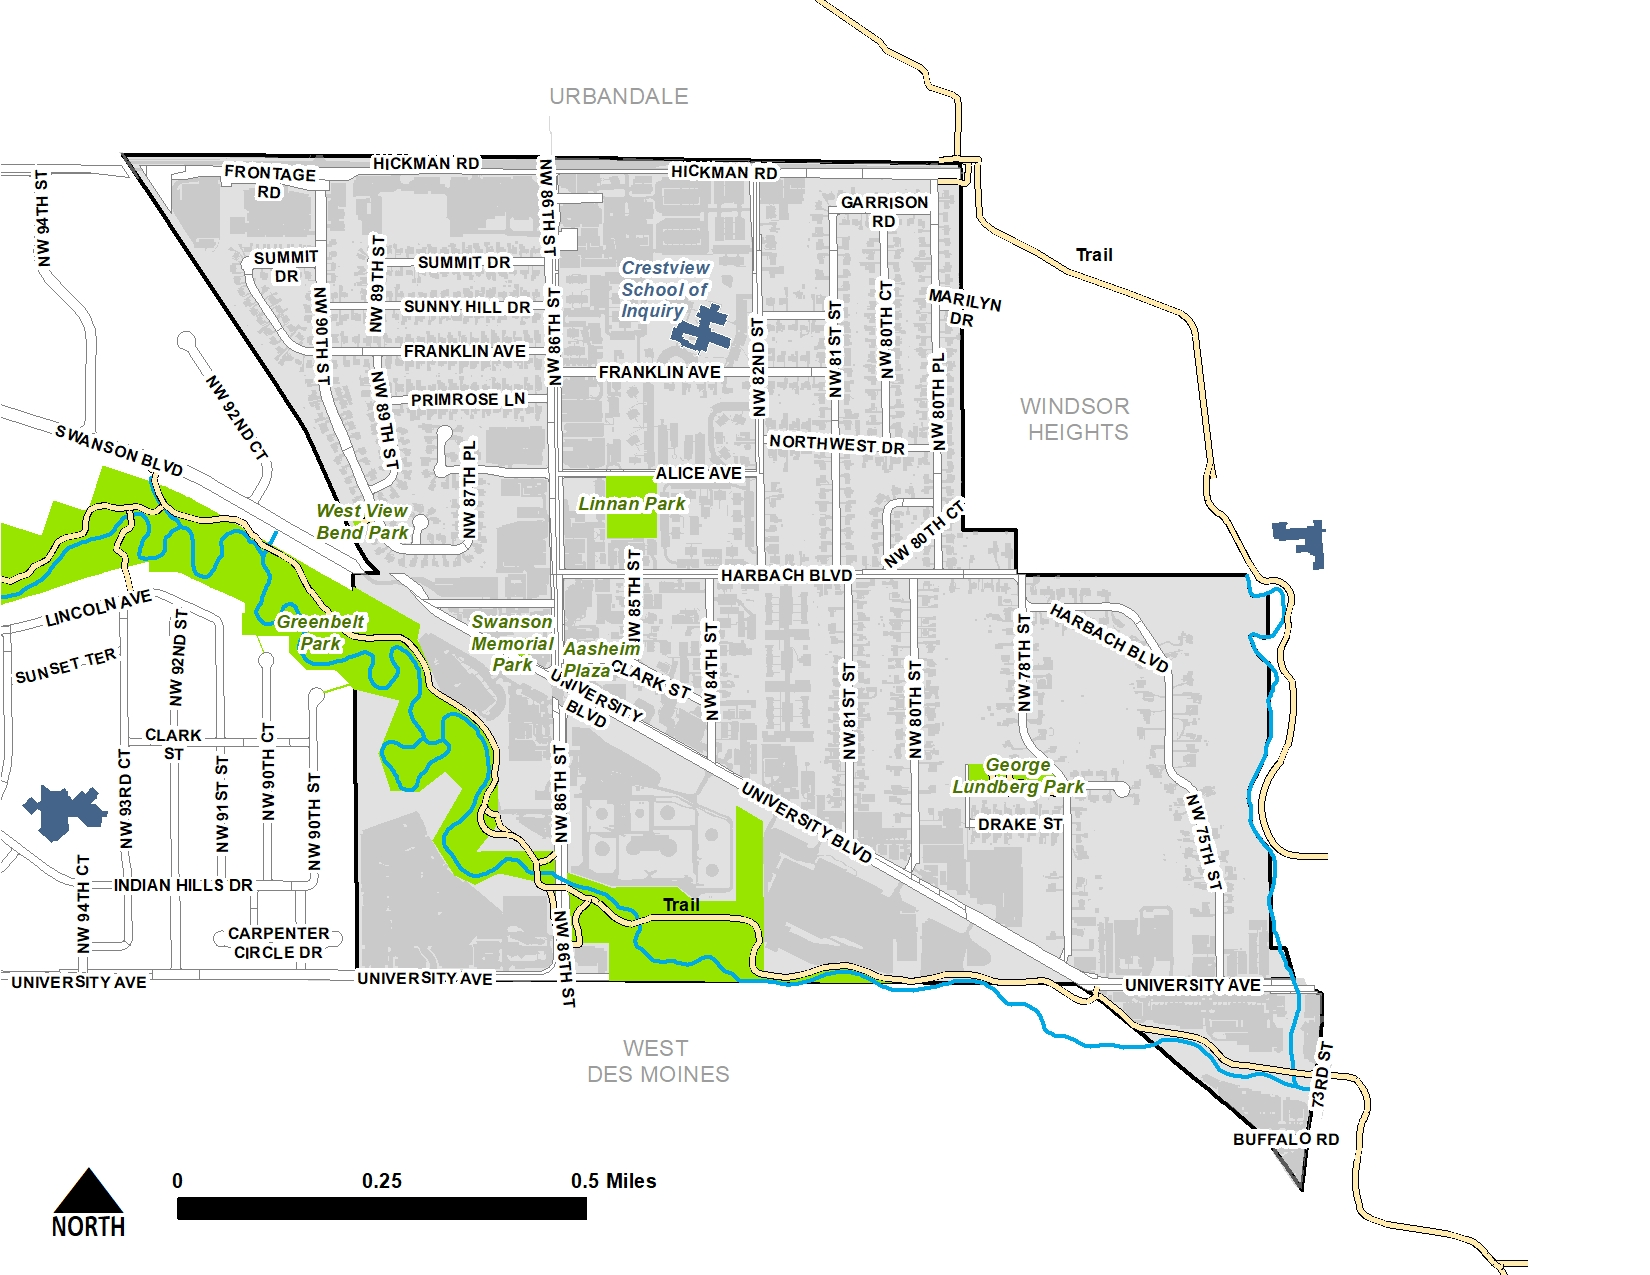 The questions in this survey apply to the District area, highlighted in the map below.